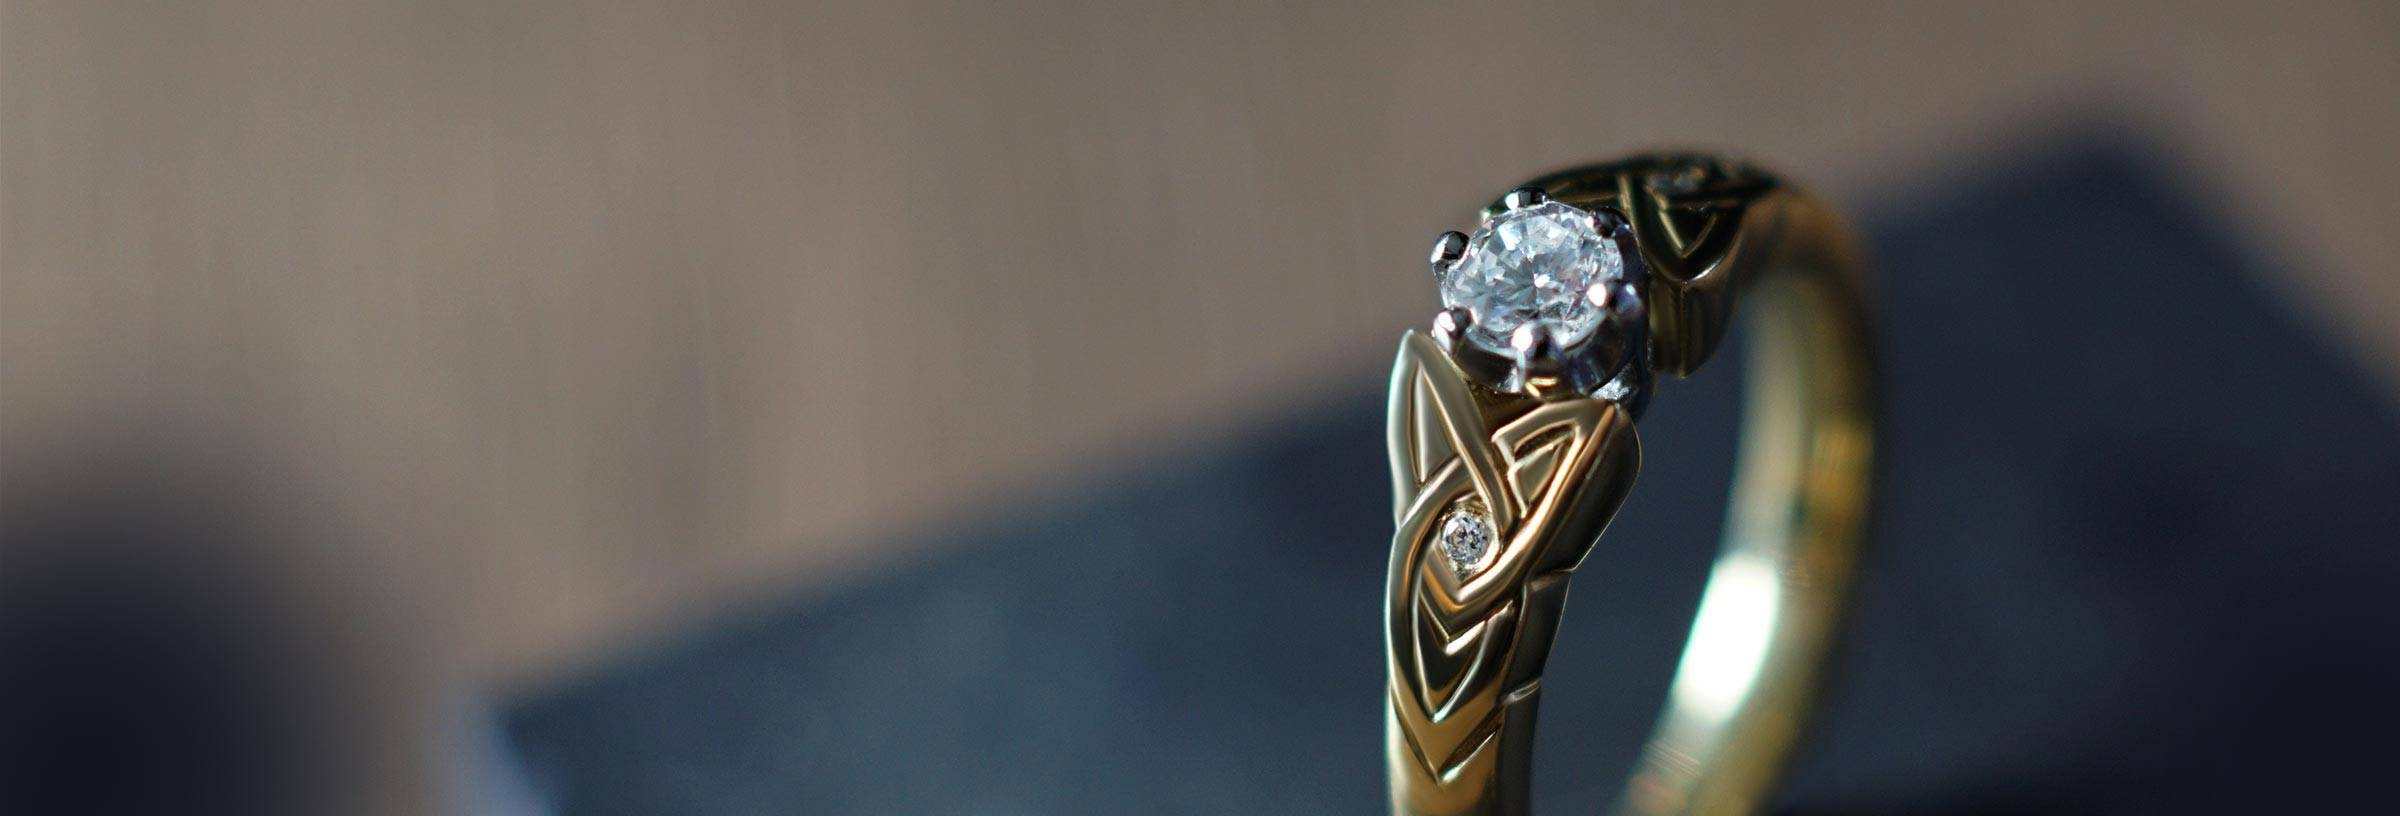 Celtic Engagement Rings | Harriet Kelsall Pertaining To Medieval Engagement Rings (View 1 of 15)